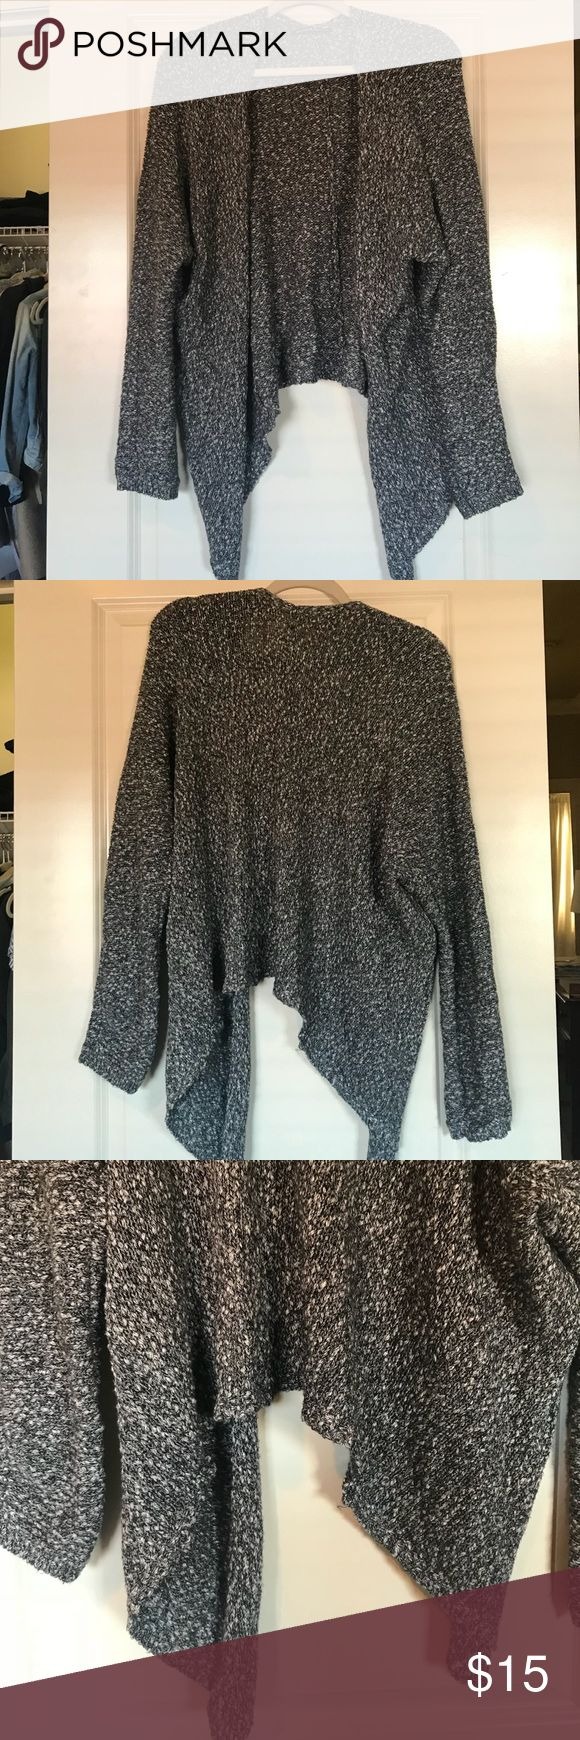 Brandy Melville Cardigan Super cute and cozy BM cardigan in dark gray color. Perfect for fall/winter but light enough to wear in the spring or summer to layer. Only worn a handful of times and in great condition! One Size Fits All Brandy Melville Sweaters Cardigans